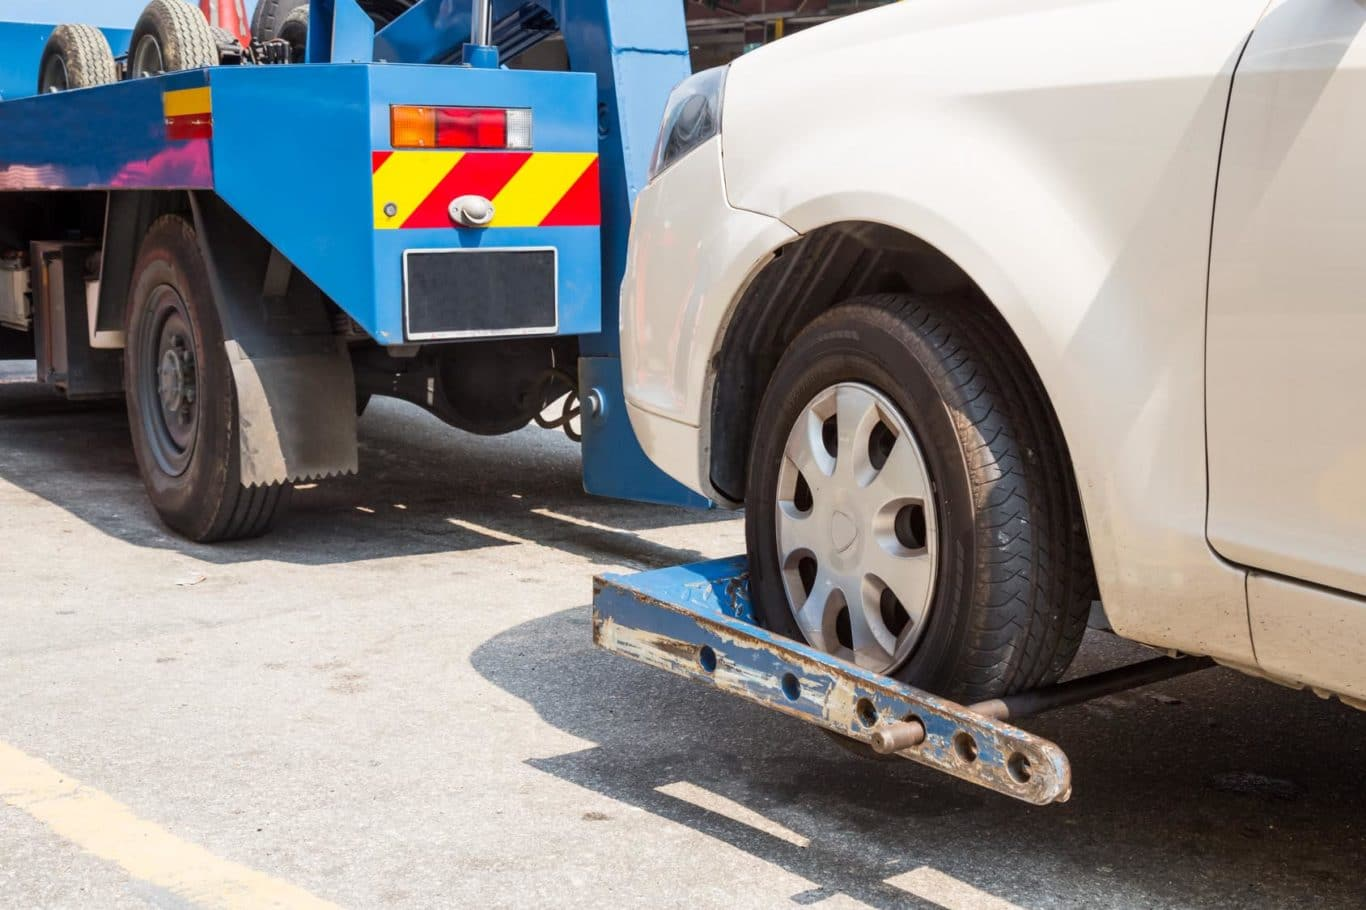 Whitechurch expert Towing services